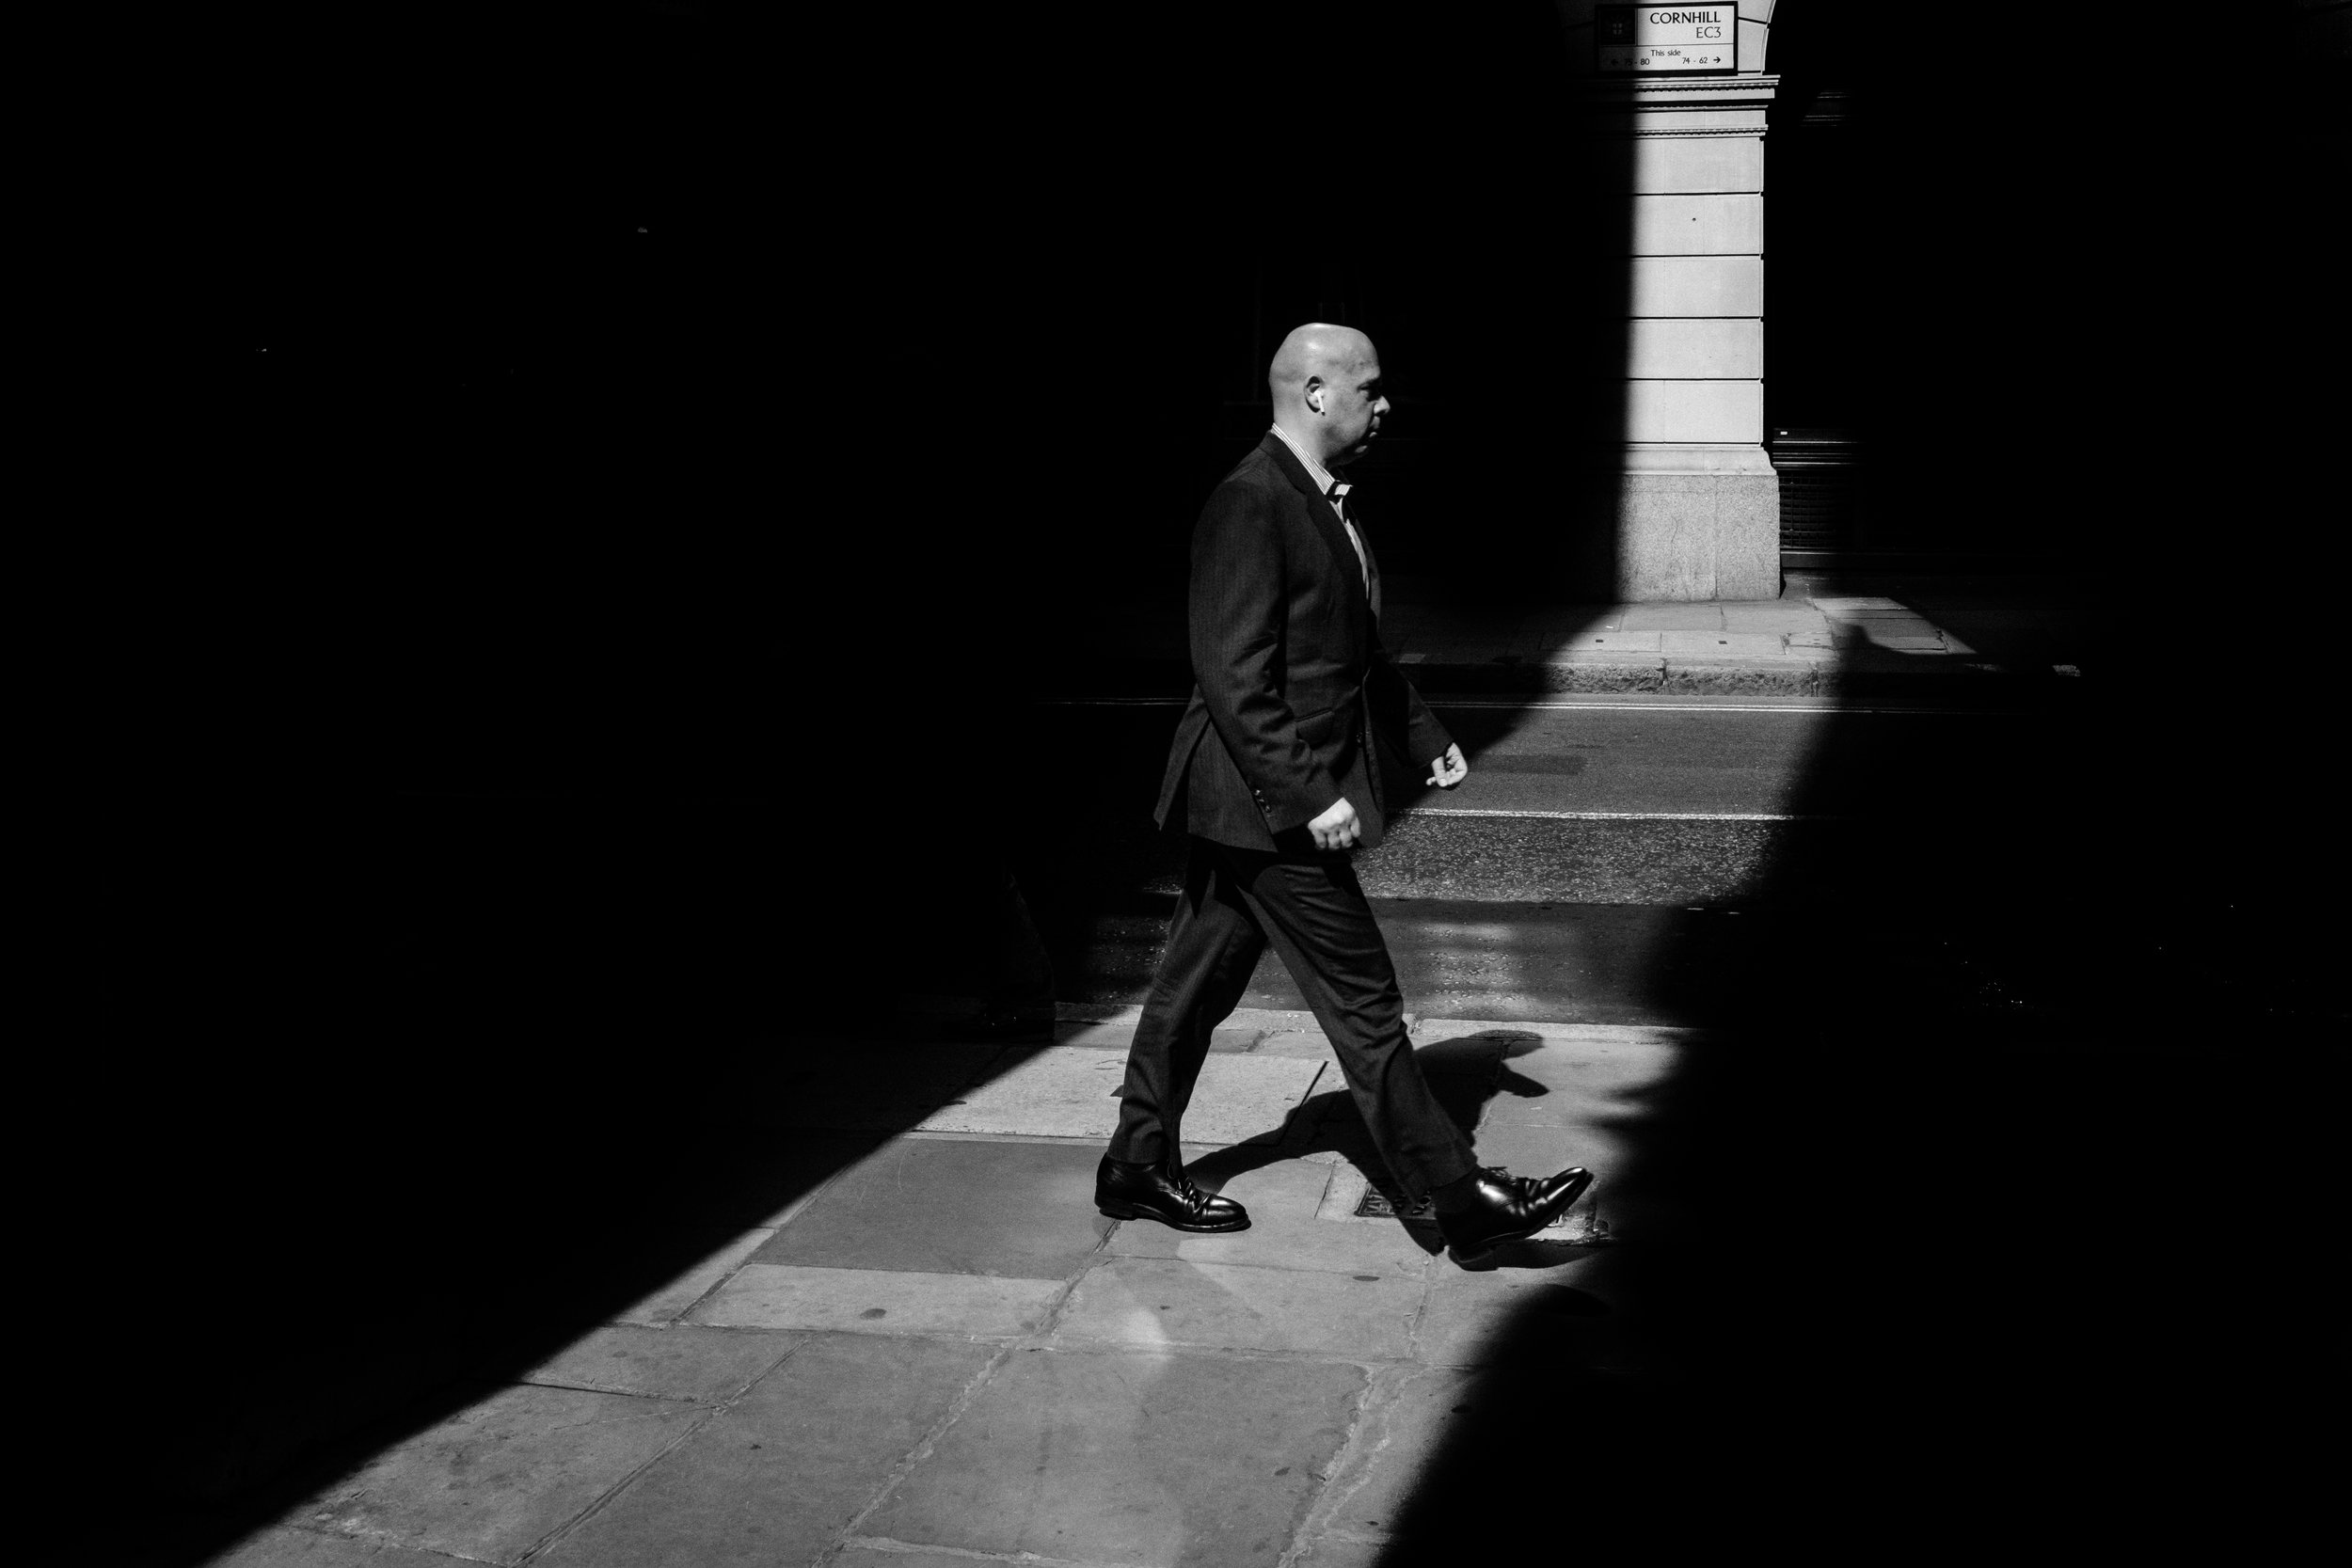 City stride - City of London, London 2018